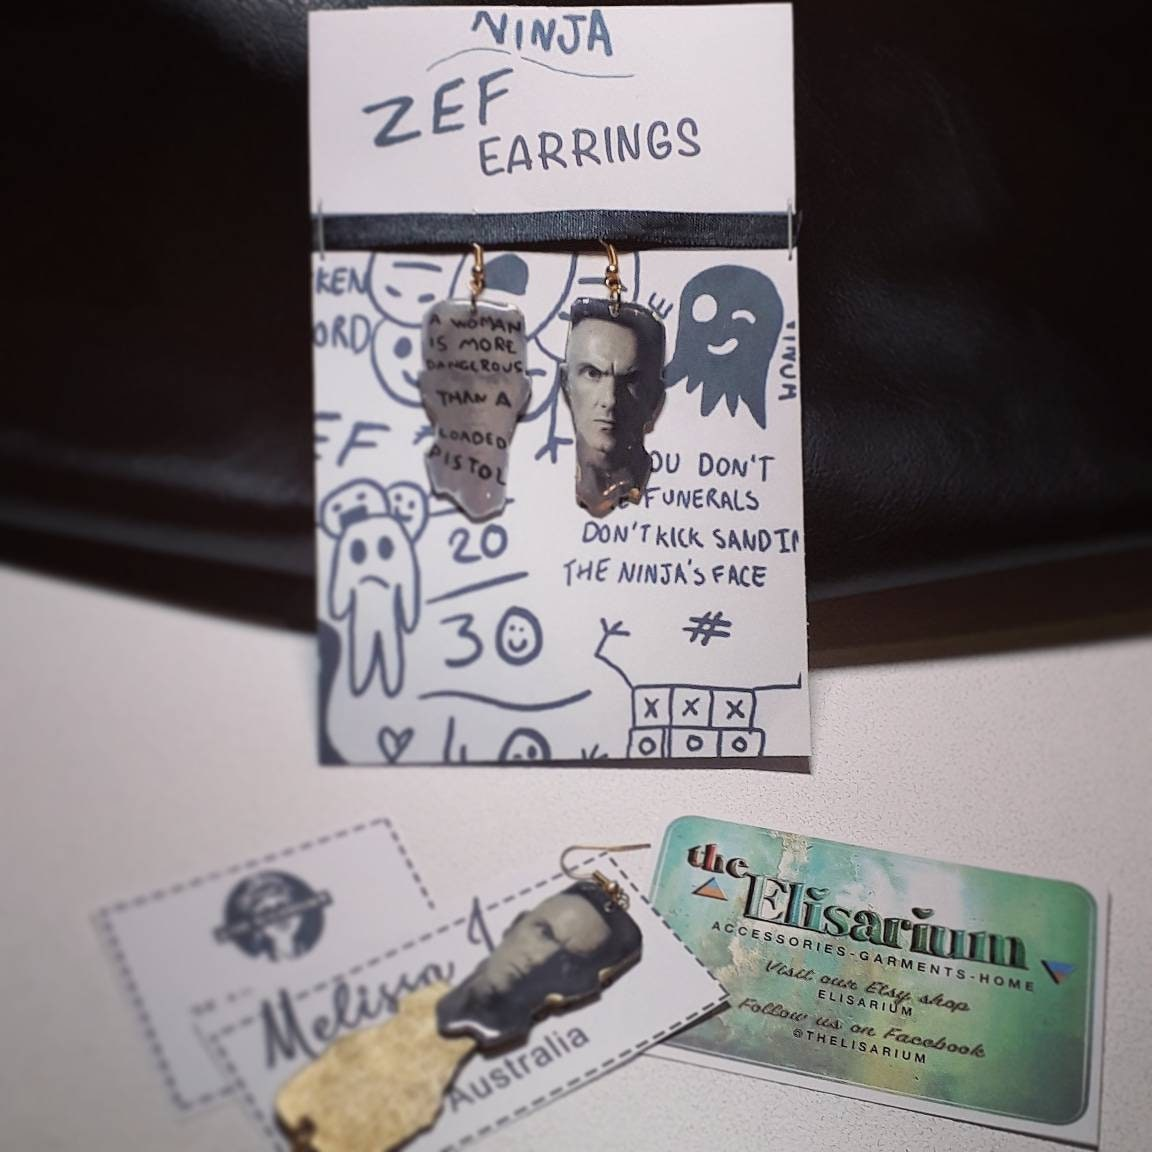 Die Antwoord Zef Style Earrings Merchandise Ninja Quote Singer